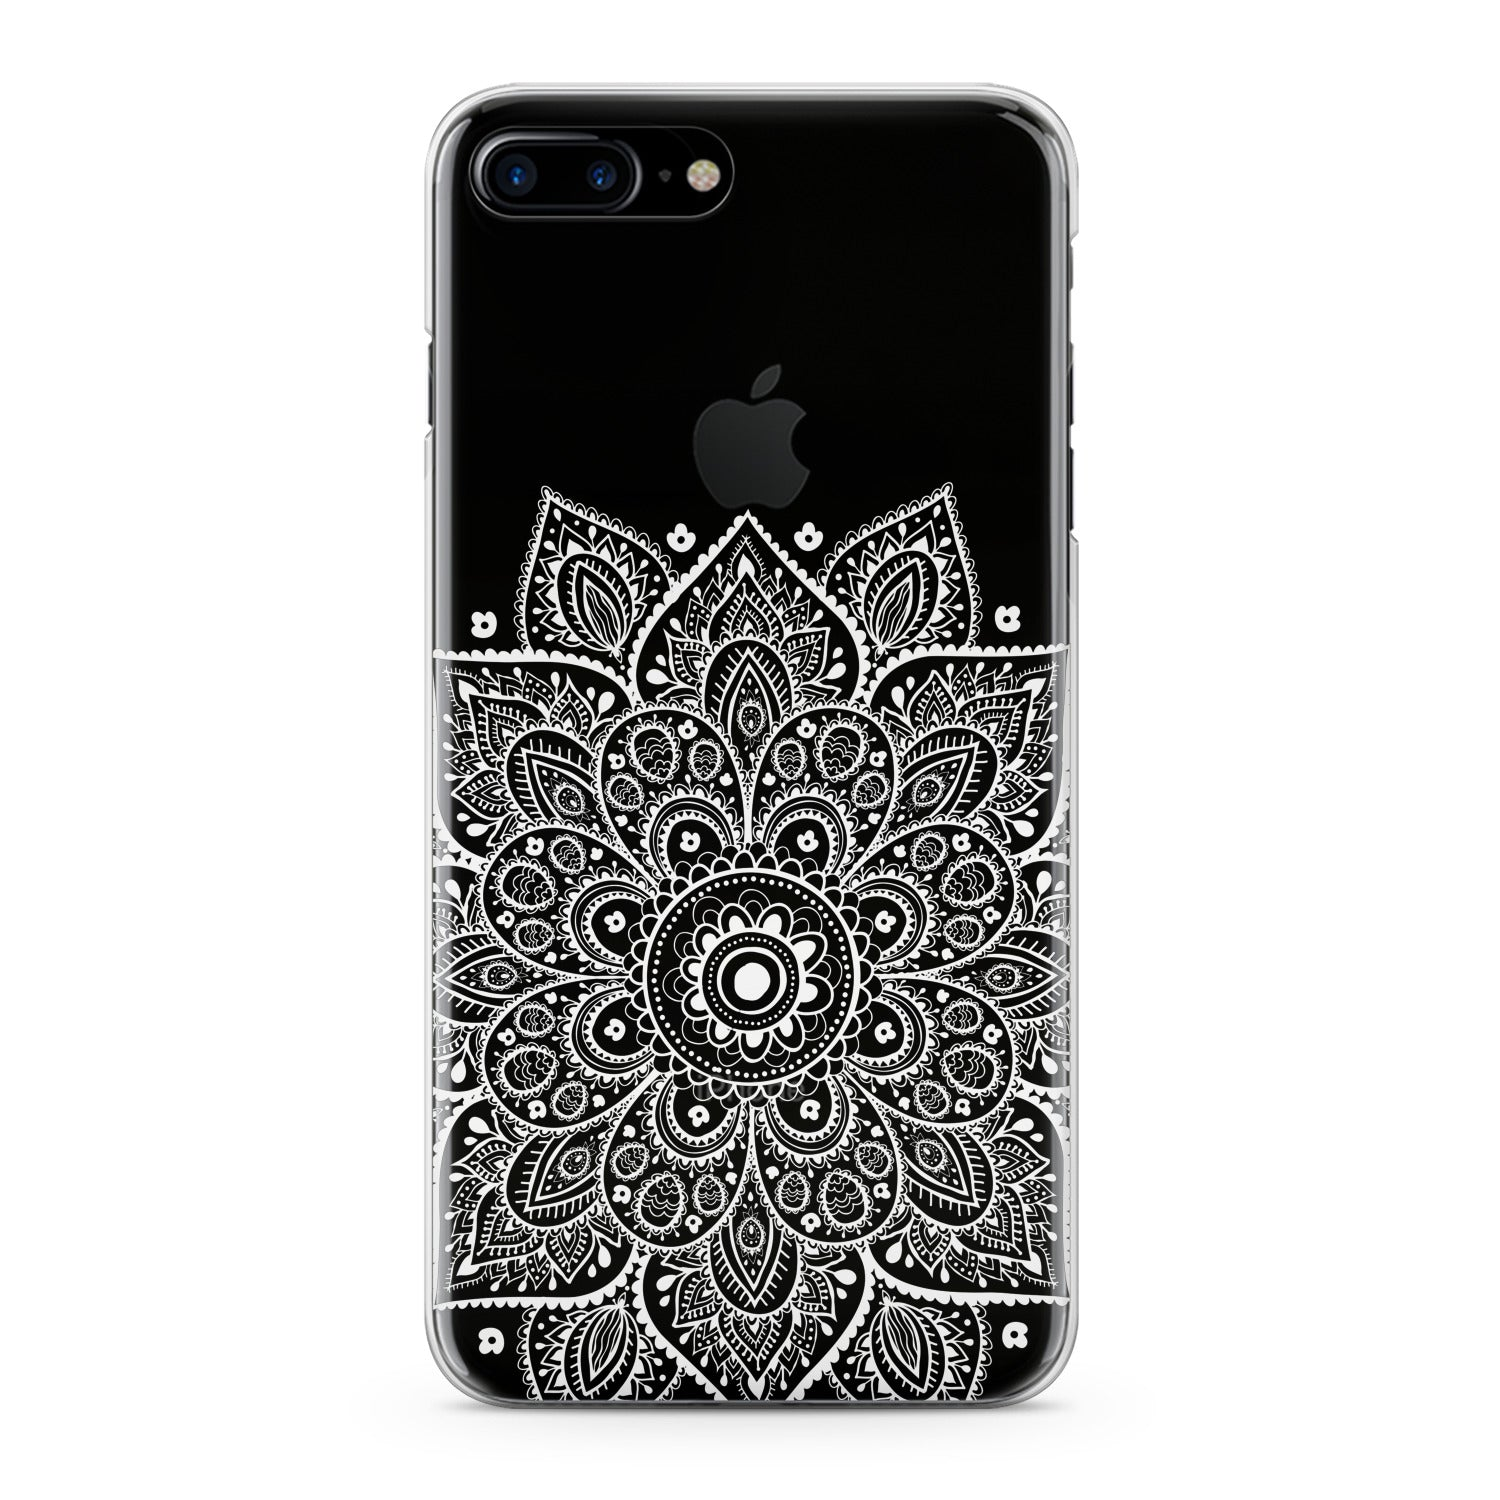 Lex Altern Mandala Flower Phone Case for your iPhone & Android phone.